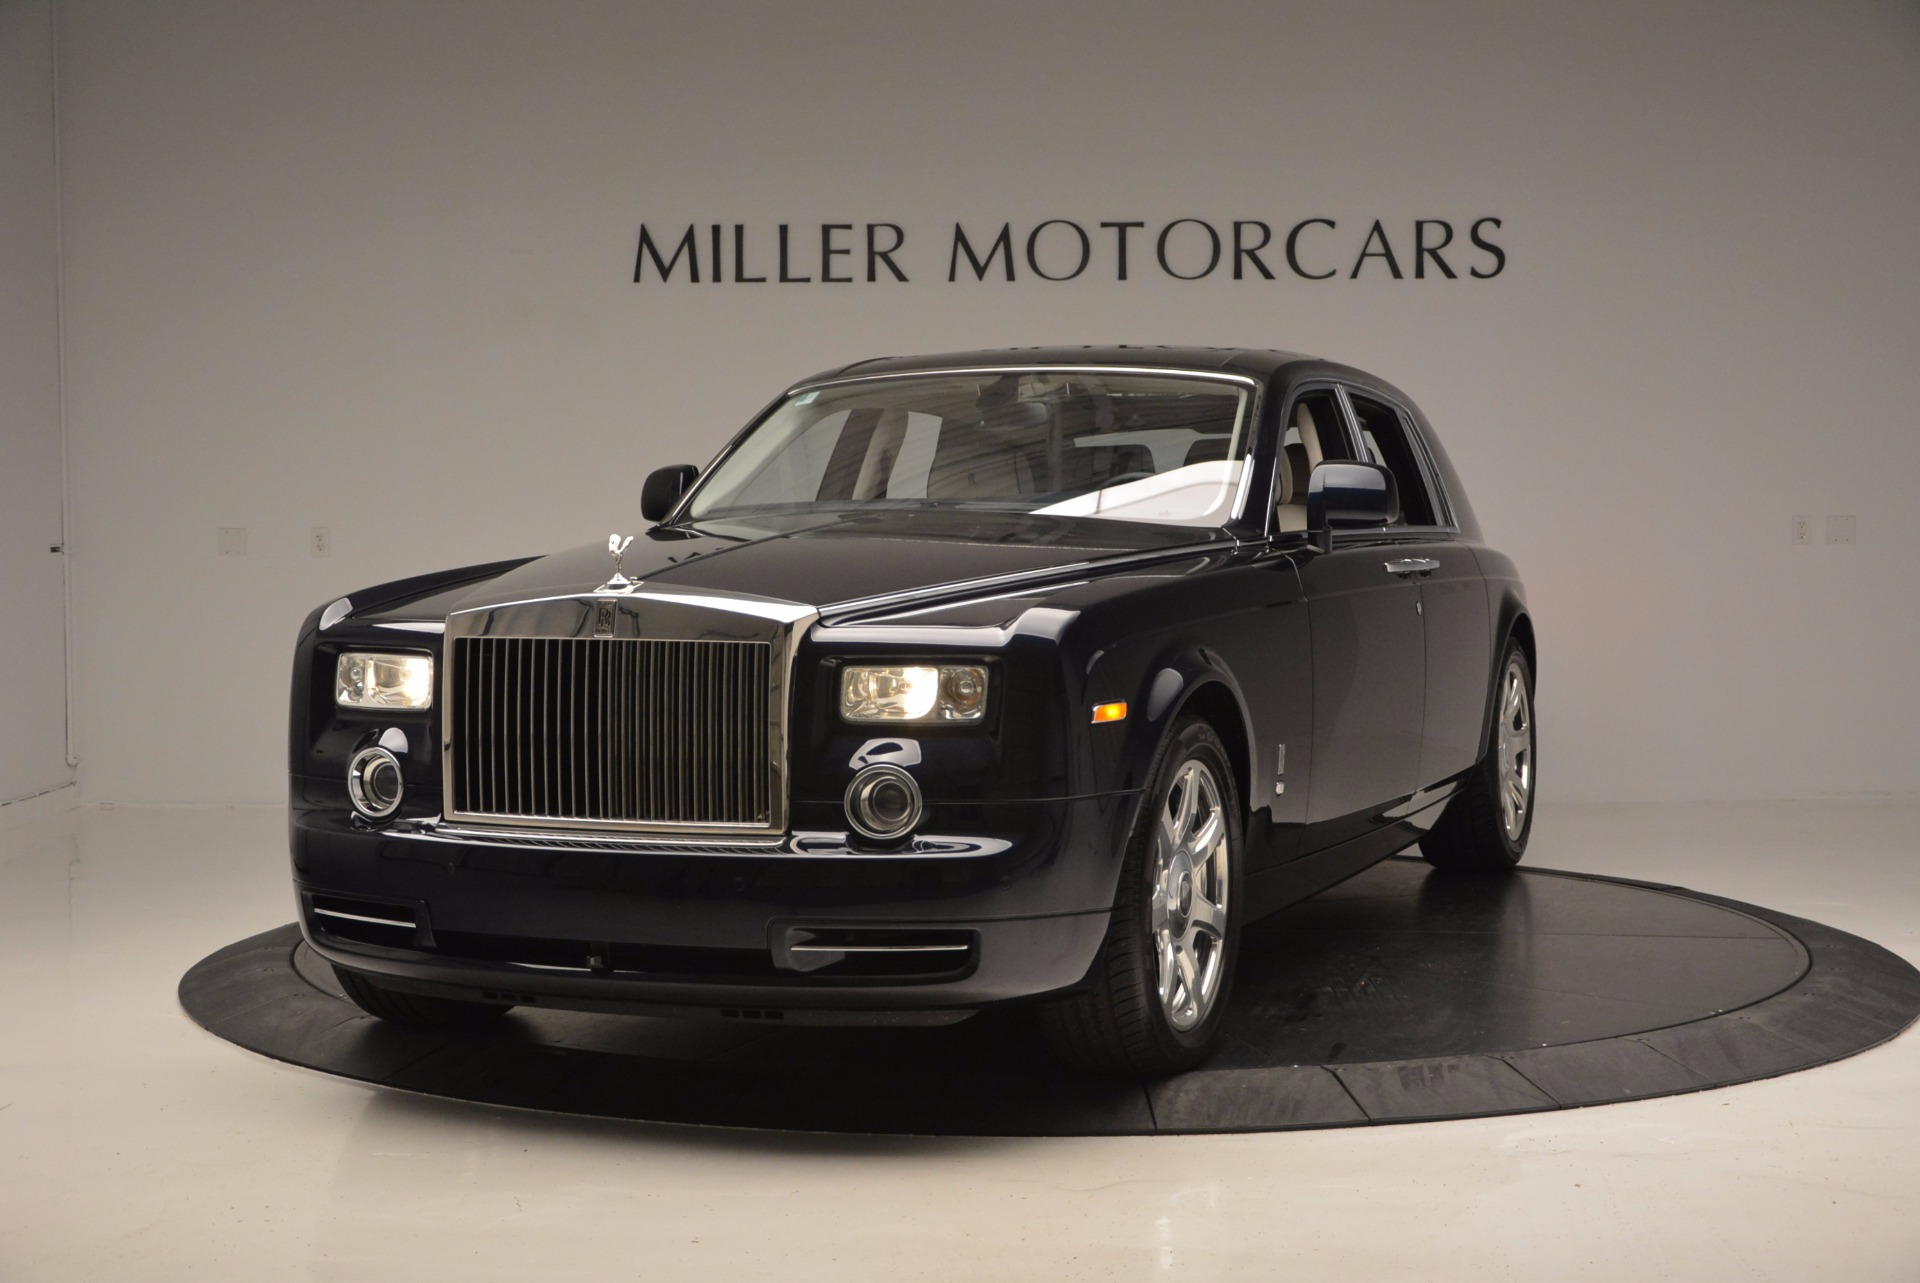 Used 2011 Rolls-Royce Phantom for sale Sold at McLaren Greenwich in Greenwich CT 06830 1